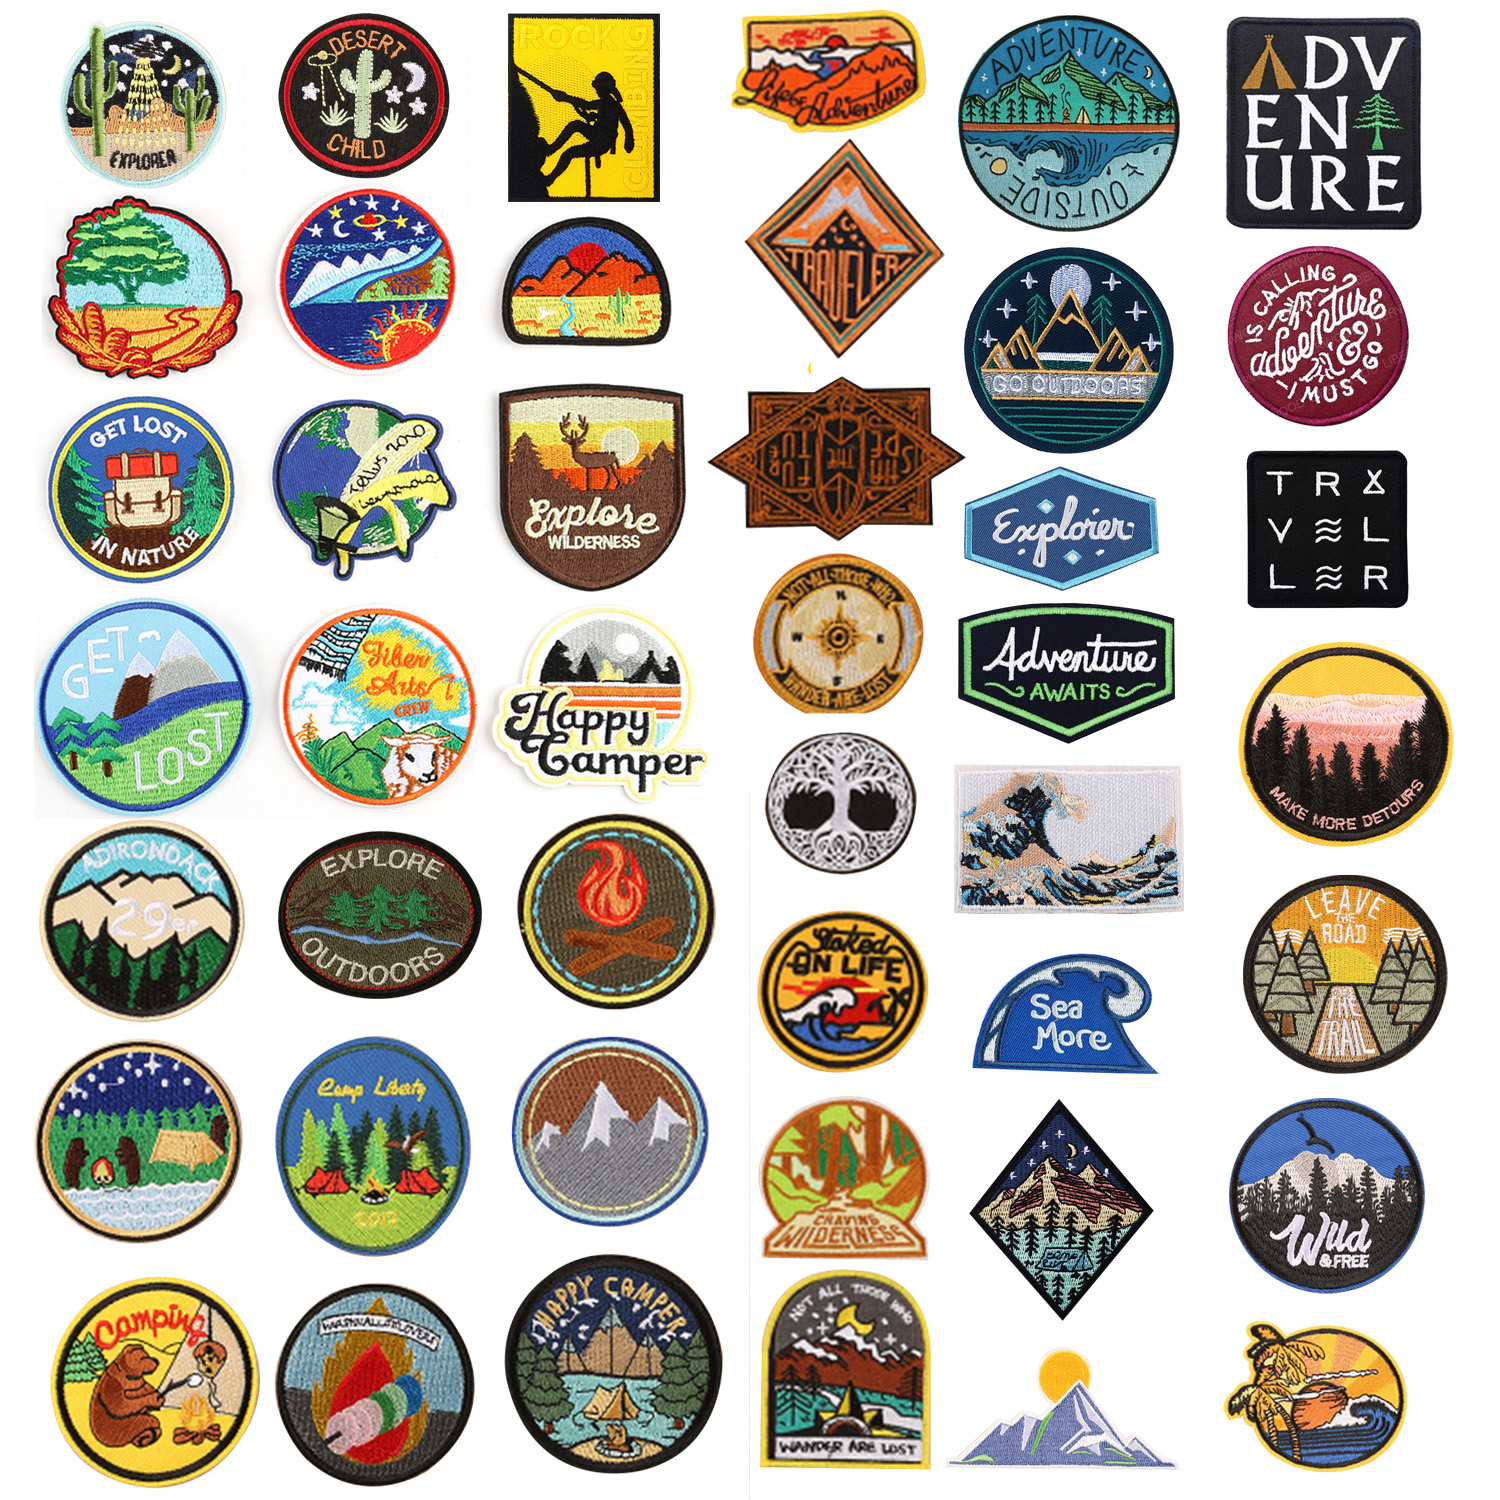 Explore Nature Camper Widness Get Lost Forest Patches Adventure Traveler Hiking Camping Applique Iron Sew Patch Badge Applique